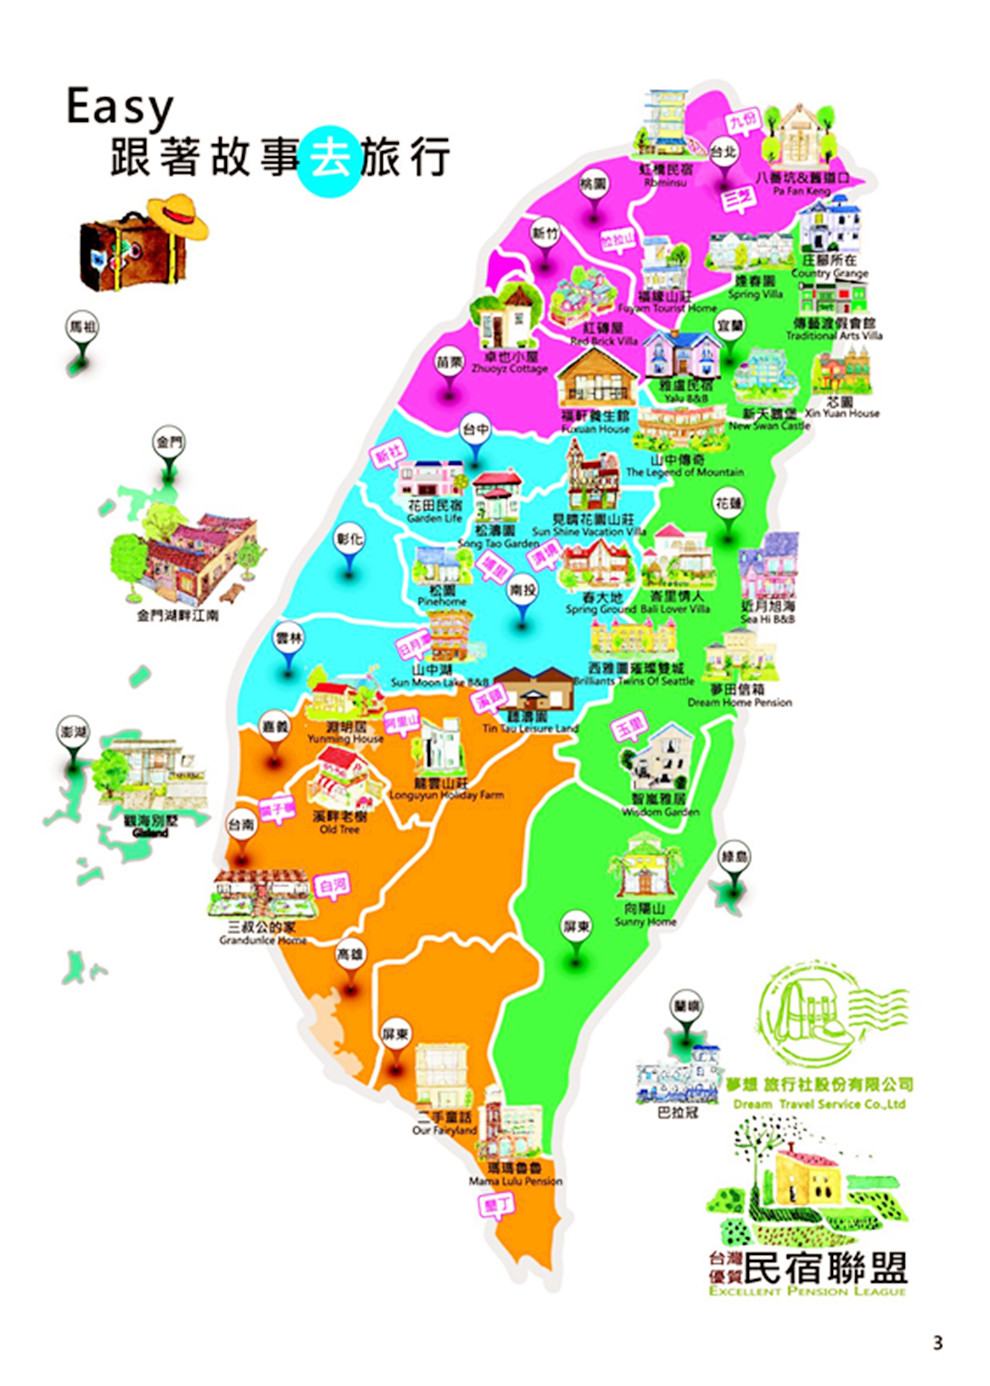 Maps update 11071536 taiwan map for tourist illustrated map of taiwan tour map related keywords and suggestions taiwan tour map taiwan map for tourist sciox Images